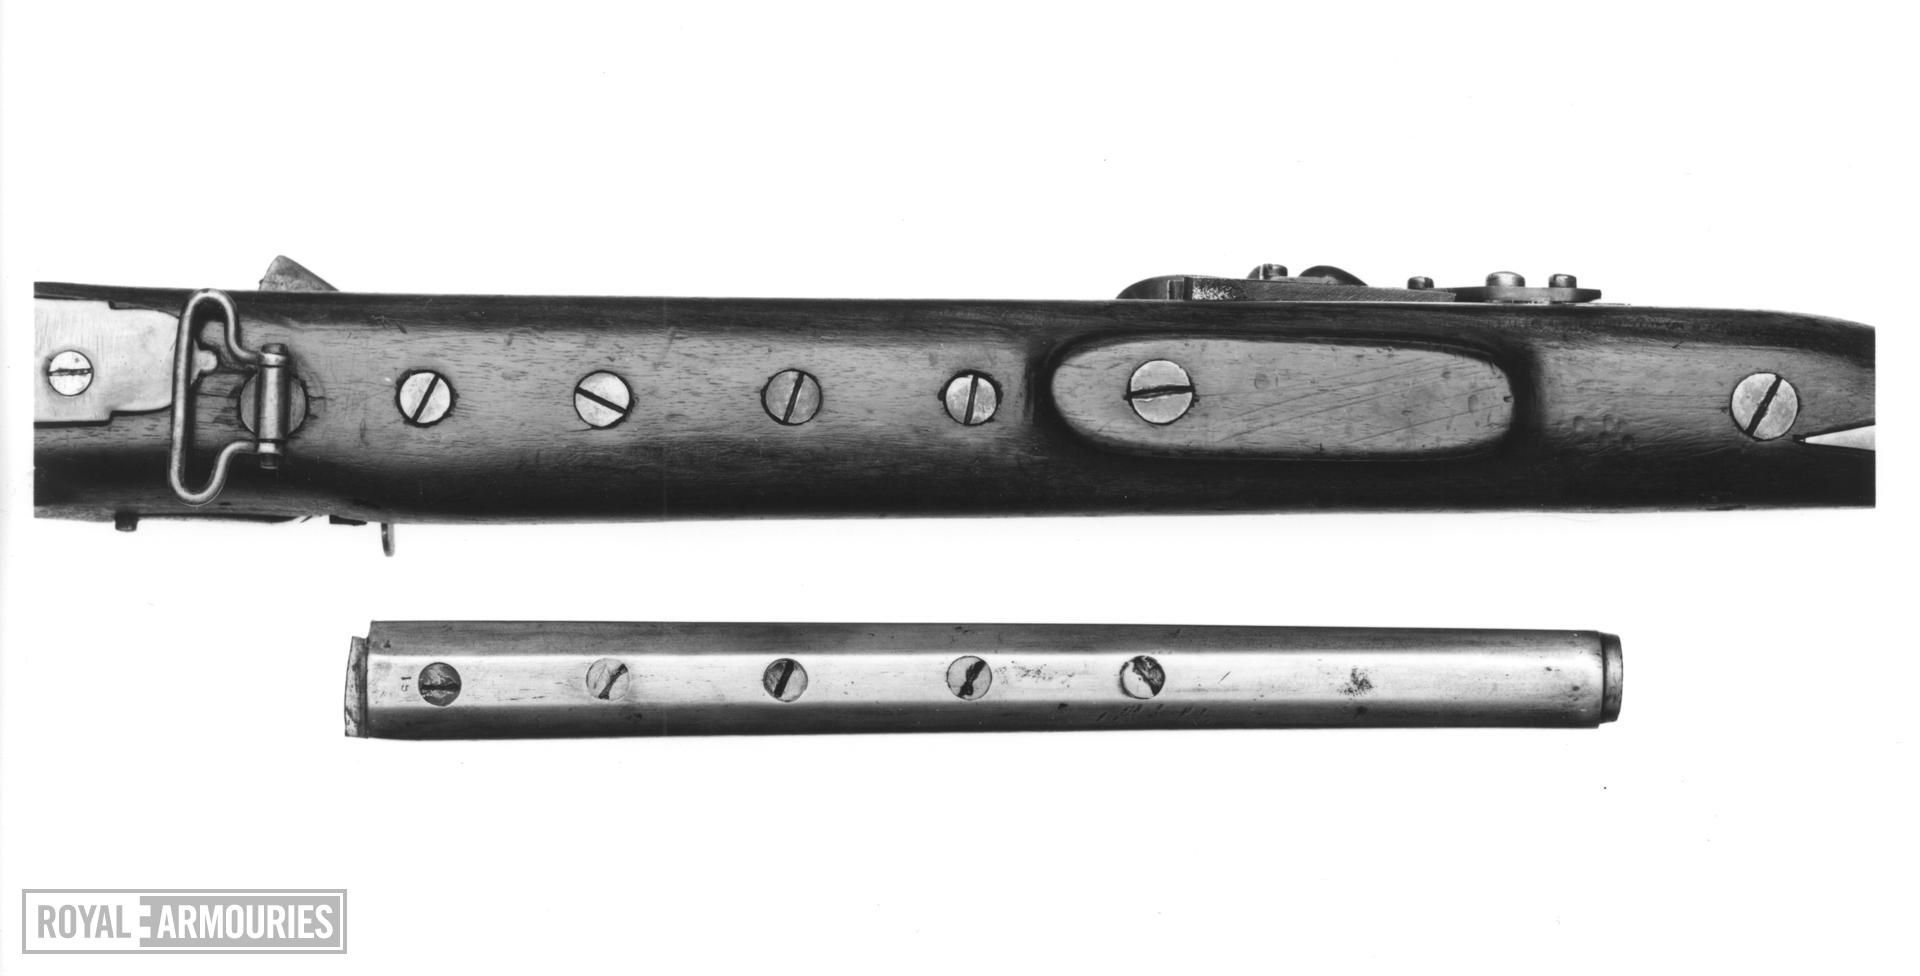 Flintlock breech-loading superimposed military musket - By Jover and Belton For the East India Company